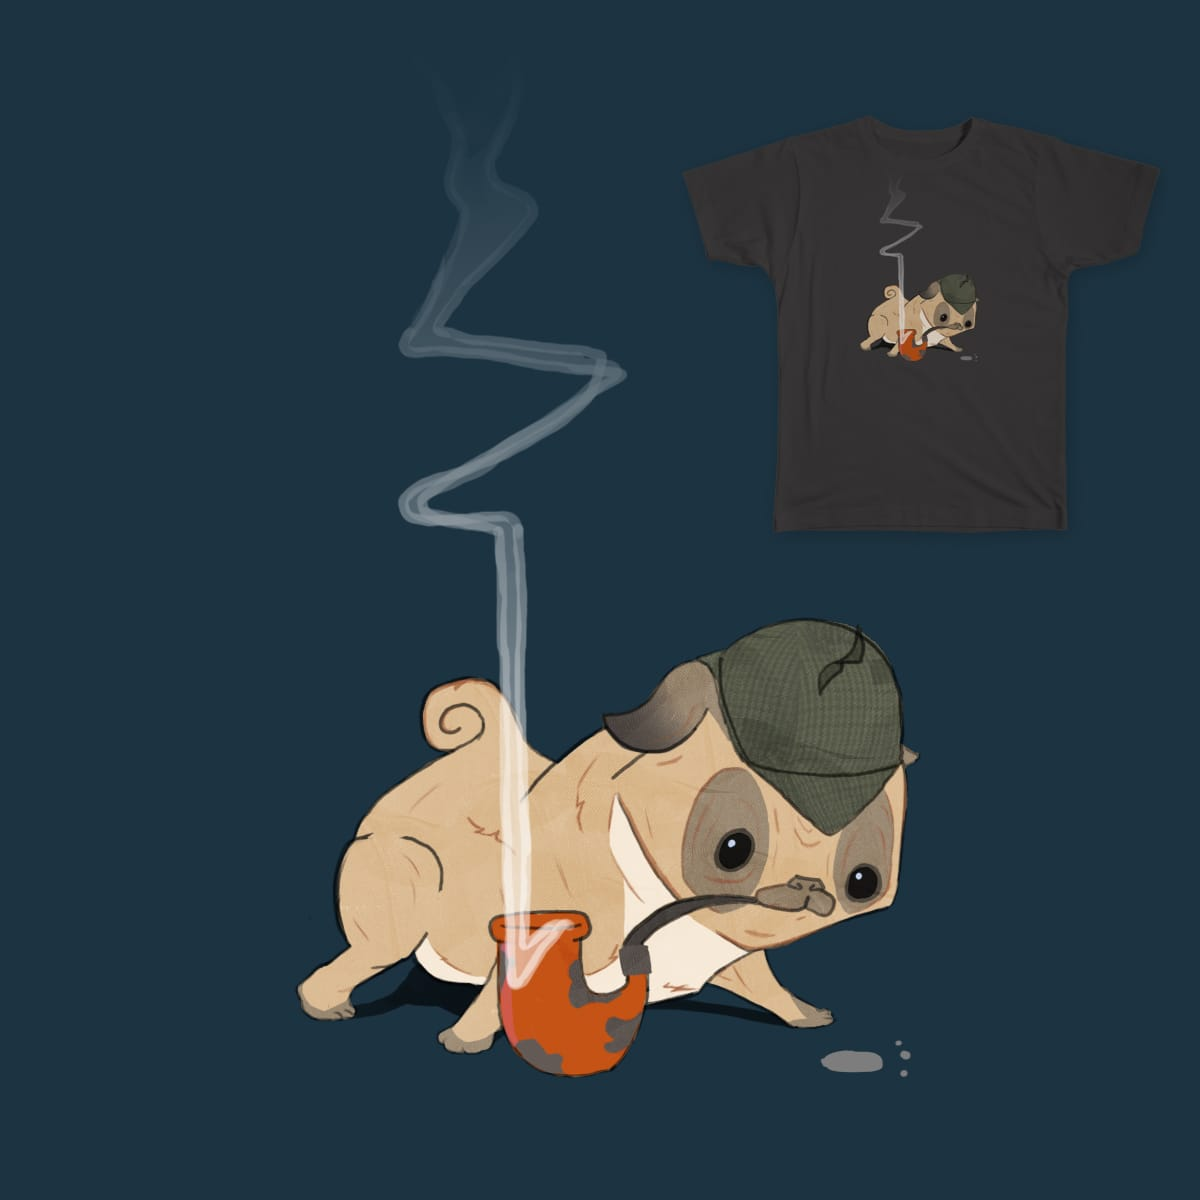 You sniff, but you do not inhale. by botev on Threadless